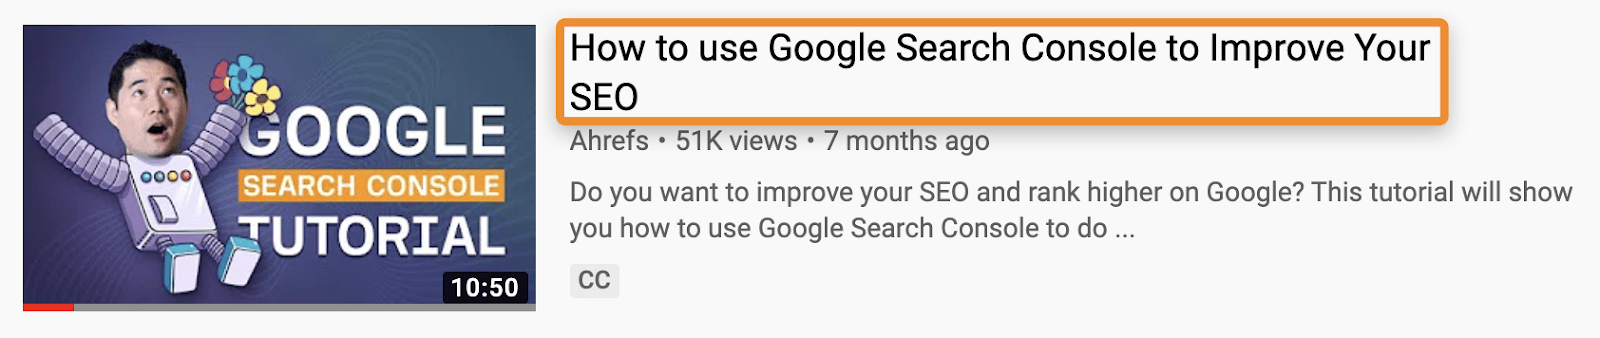 9 ahrefs youtube title